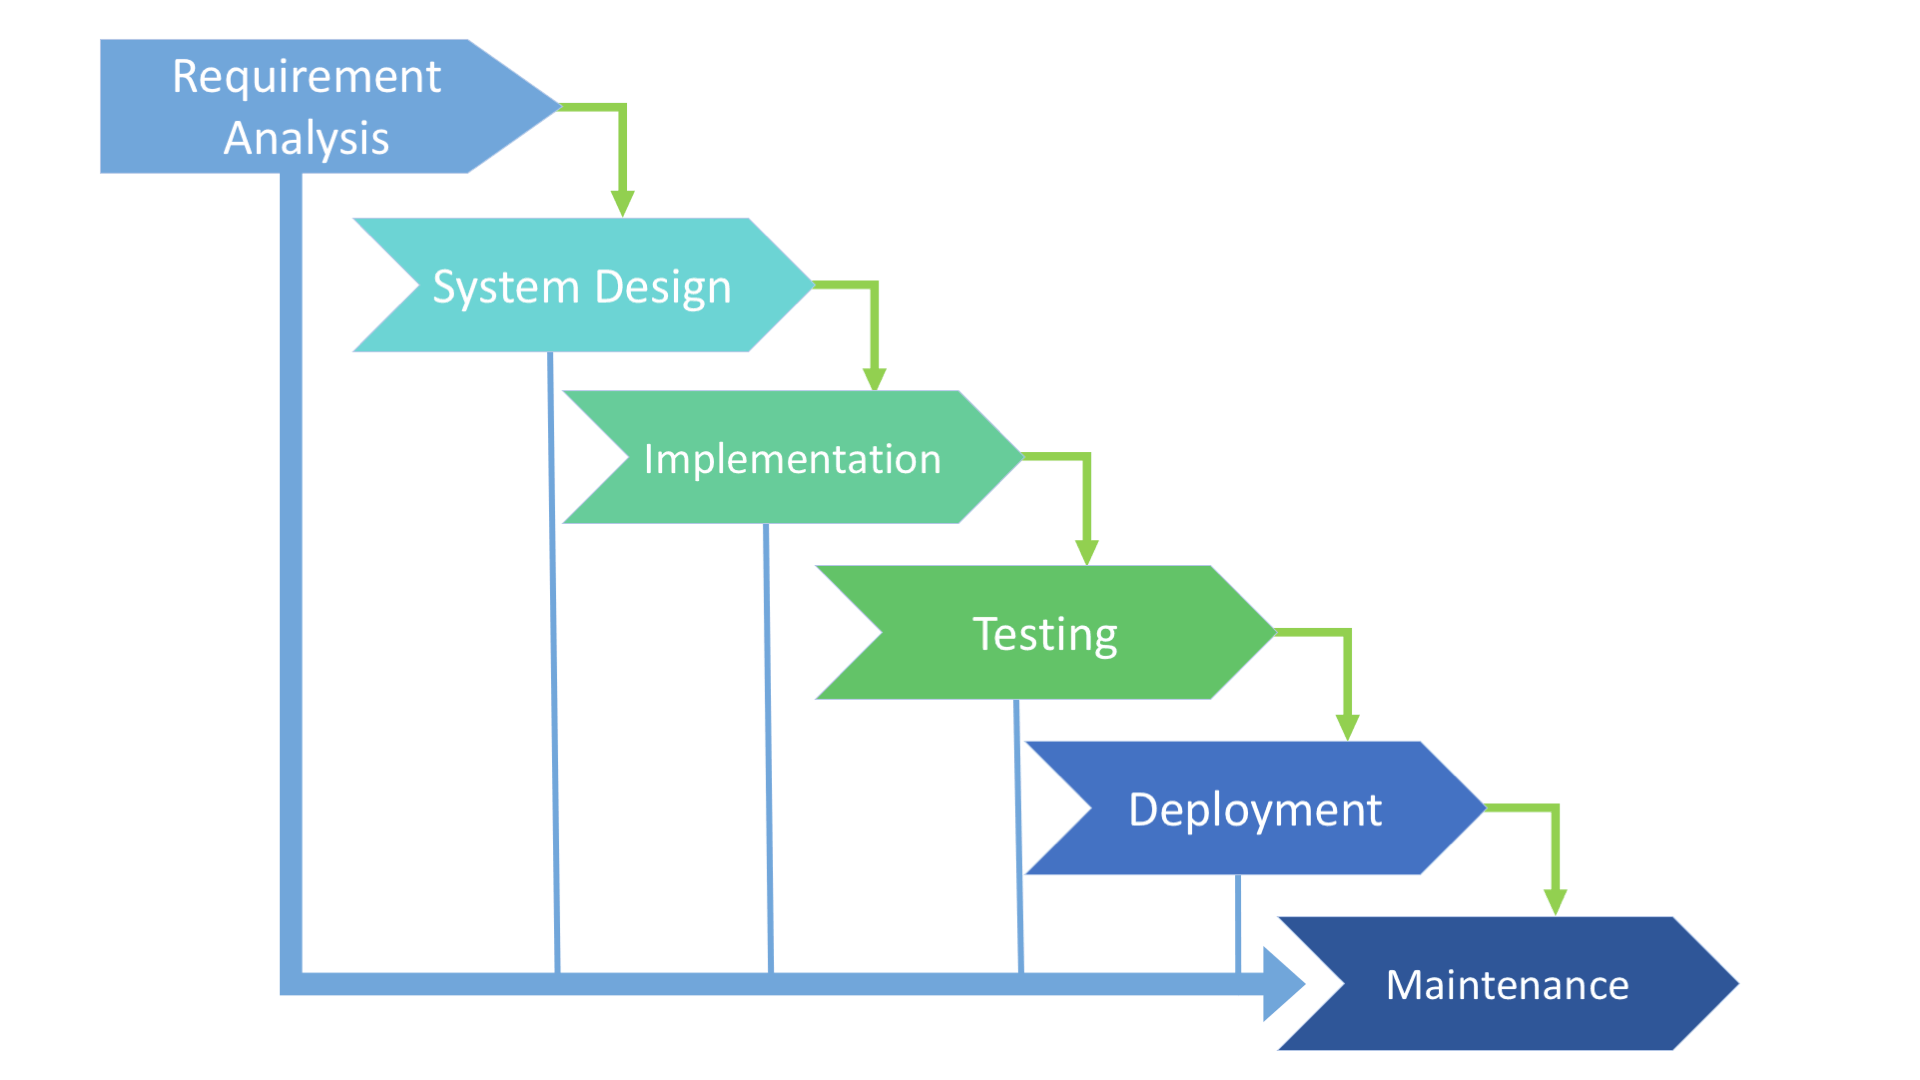 SDLC Models Explained: Agile, Waterfall, V-Shaped, Iterative, Spiral